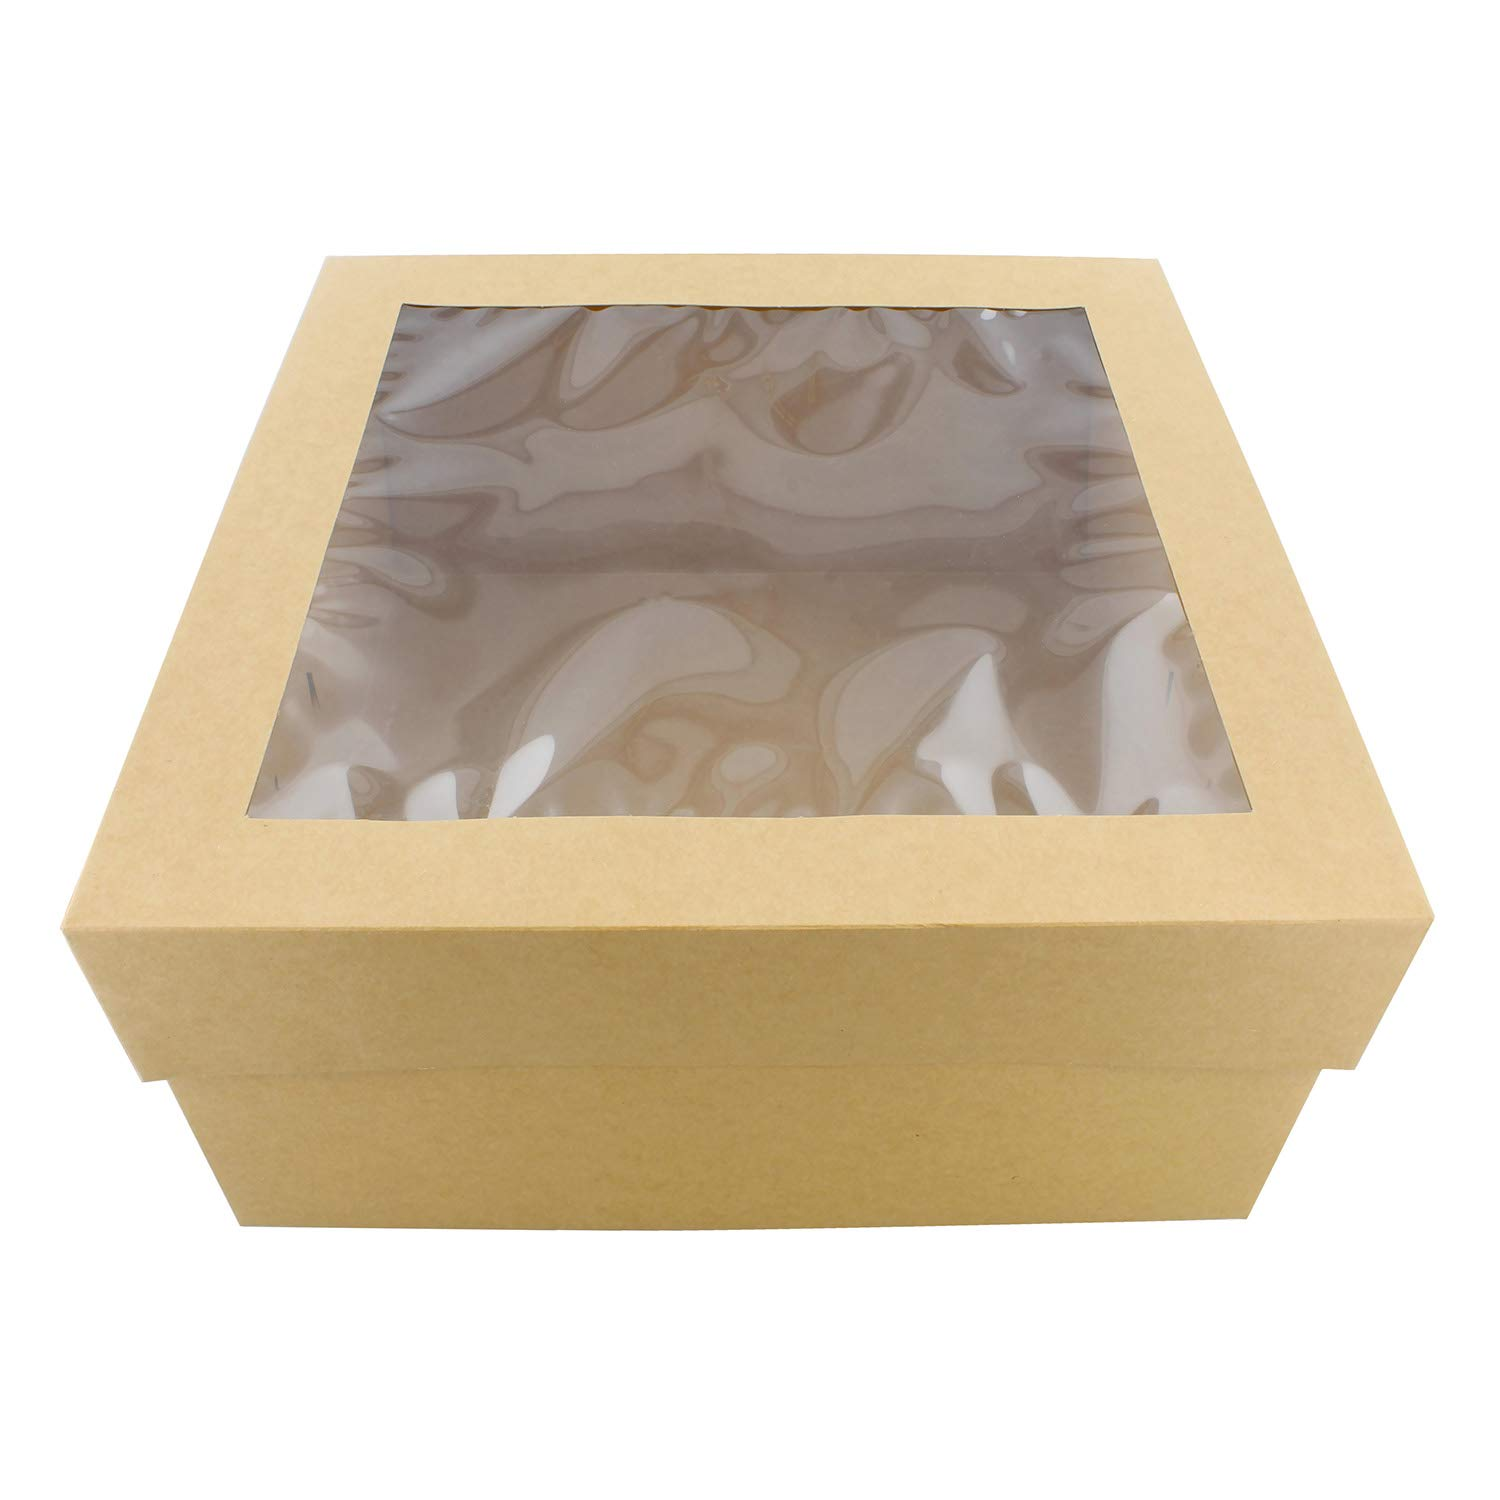 SpecialT | Cake Boxes with Window 25pk 12'' x 12'' x 6'' Inch Brown Bakery Boxes, Disposable Cake Containers, Dessert Boxes